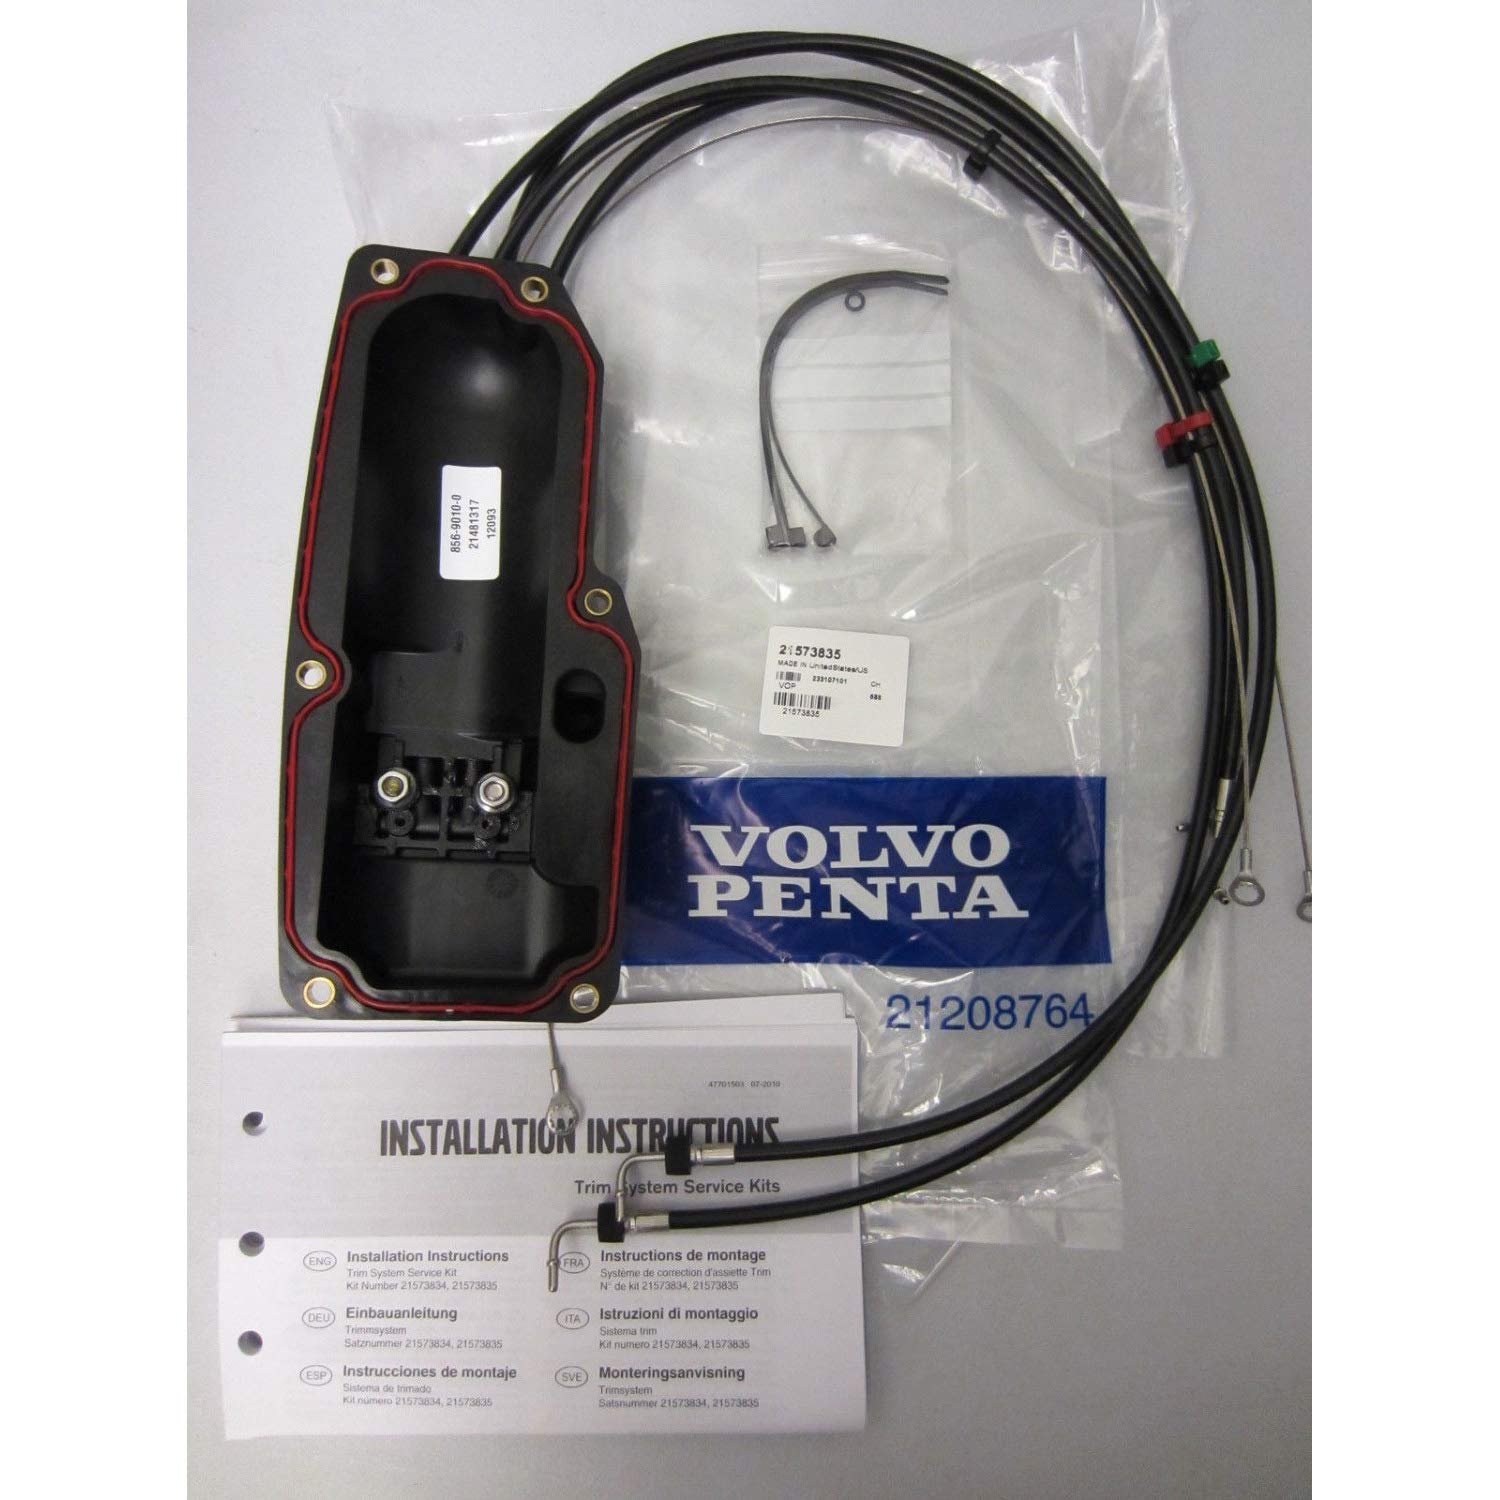 Volvo Penta Oem Trim Tilt Pump System Repair Kit New Outdrive Wiring Diagrams 21945911 Second Design Cover Old 21573835 Sports Outdoors